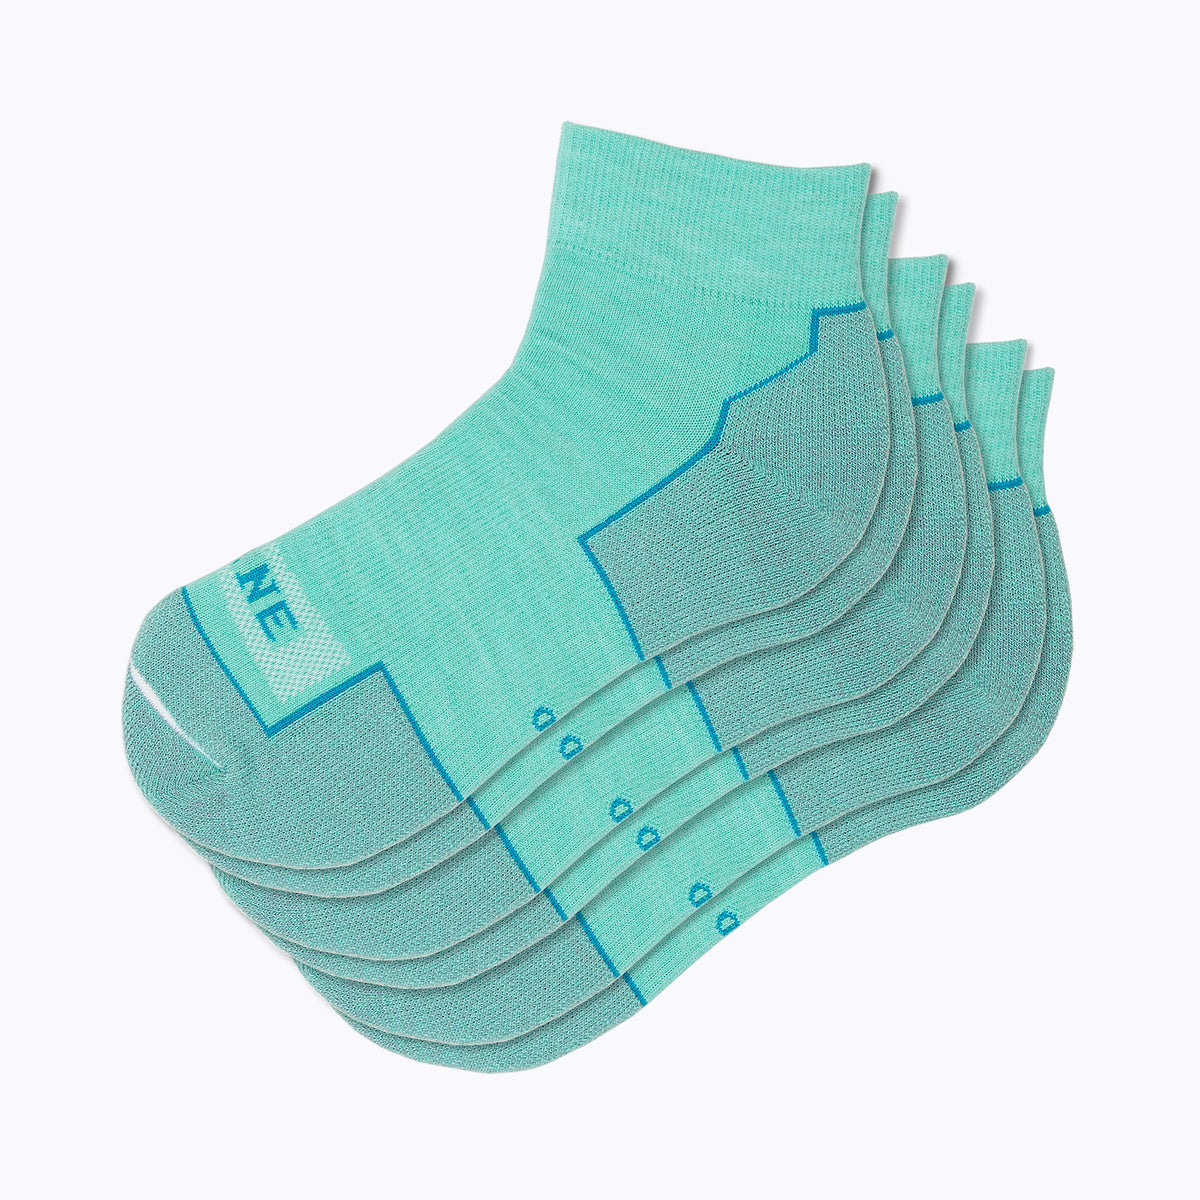 Everyday 3 Pack Women's Qtr Socks - Turq by Canyon x Lane Socks